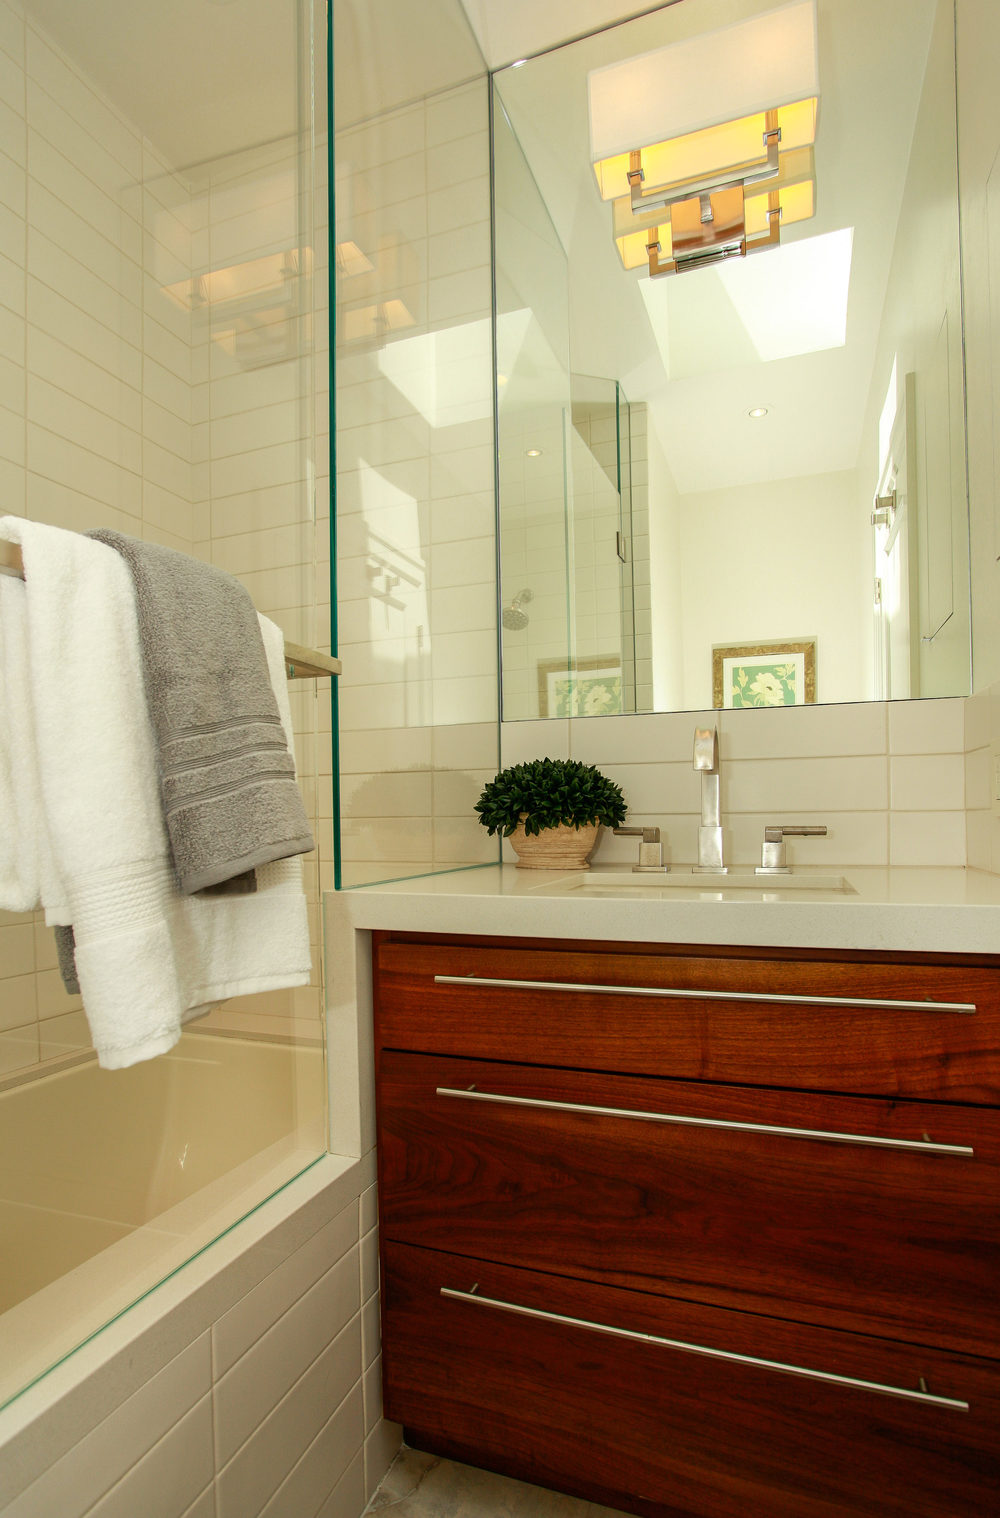 1778 Beach St San Francisco CA-print-025-23-Bathroom-2767x4200-300dpi.jpg